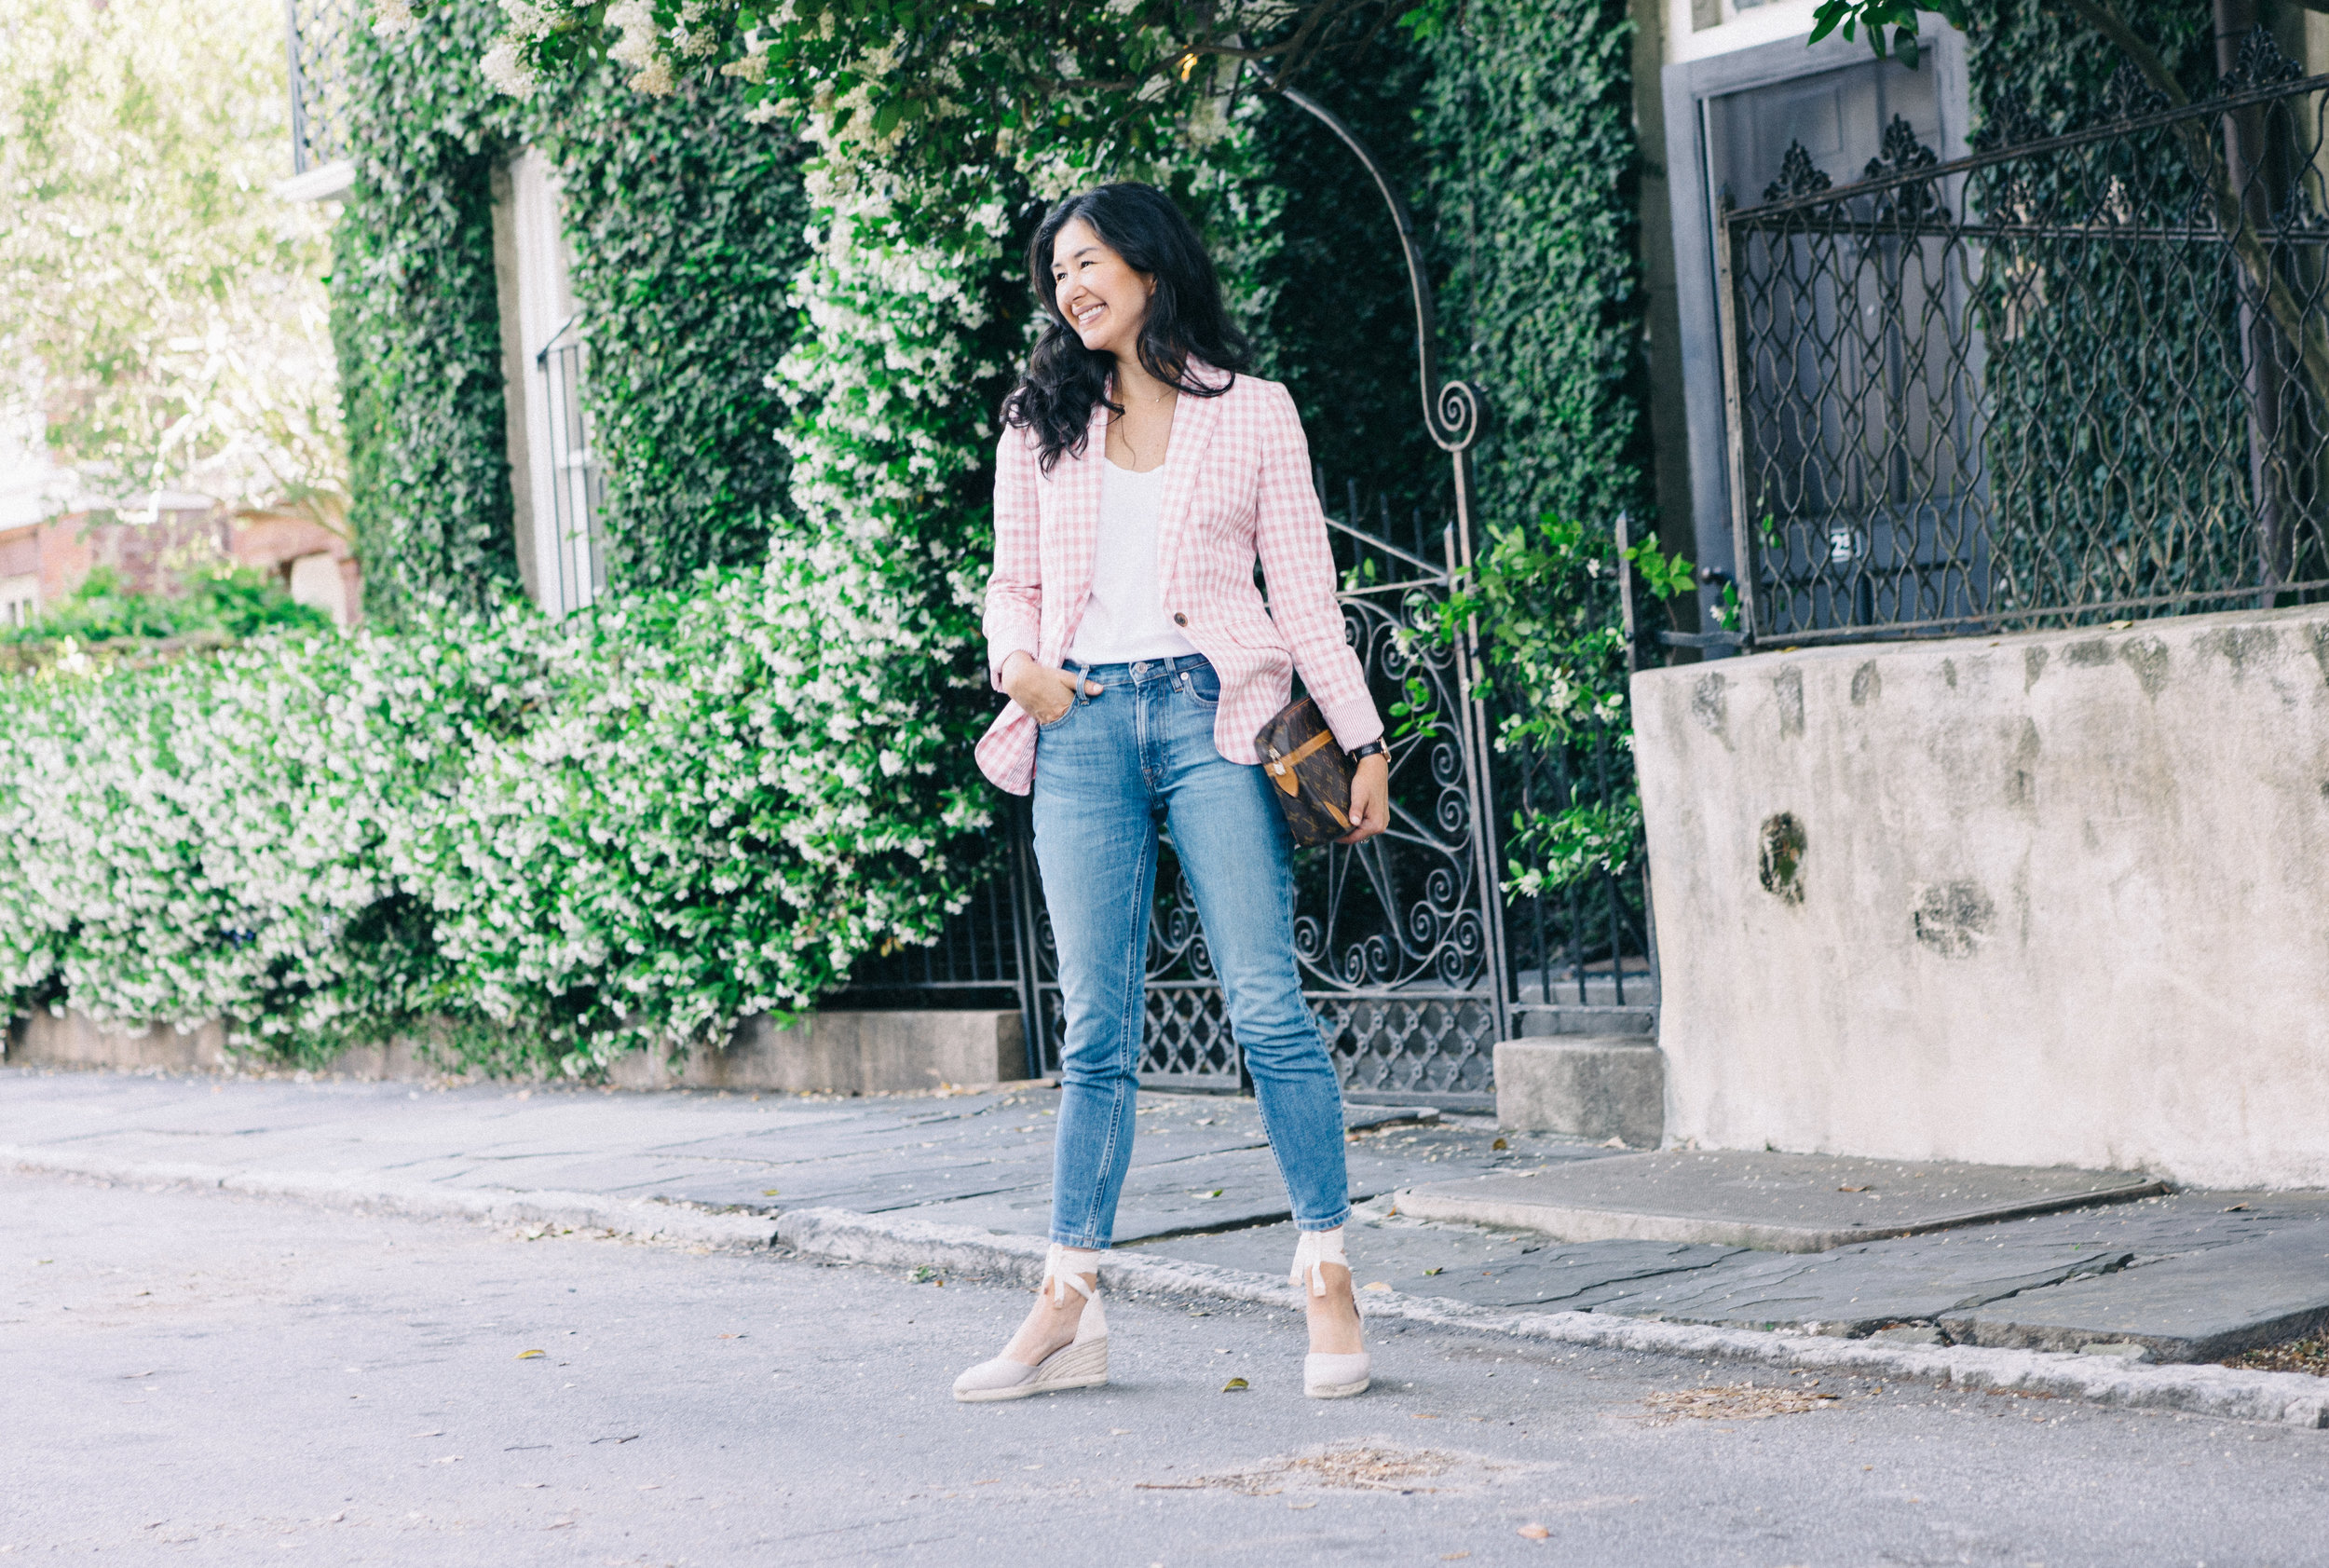 jcrew-gimgham-blazer-castaner-carina-espadrilles-louis-vuitton-clutch-everlane-jeans-everlane-tee-mejuri-diamond-necklace-jacy-watch-27.jpg